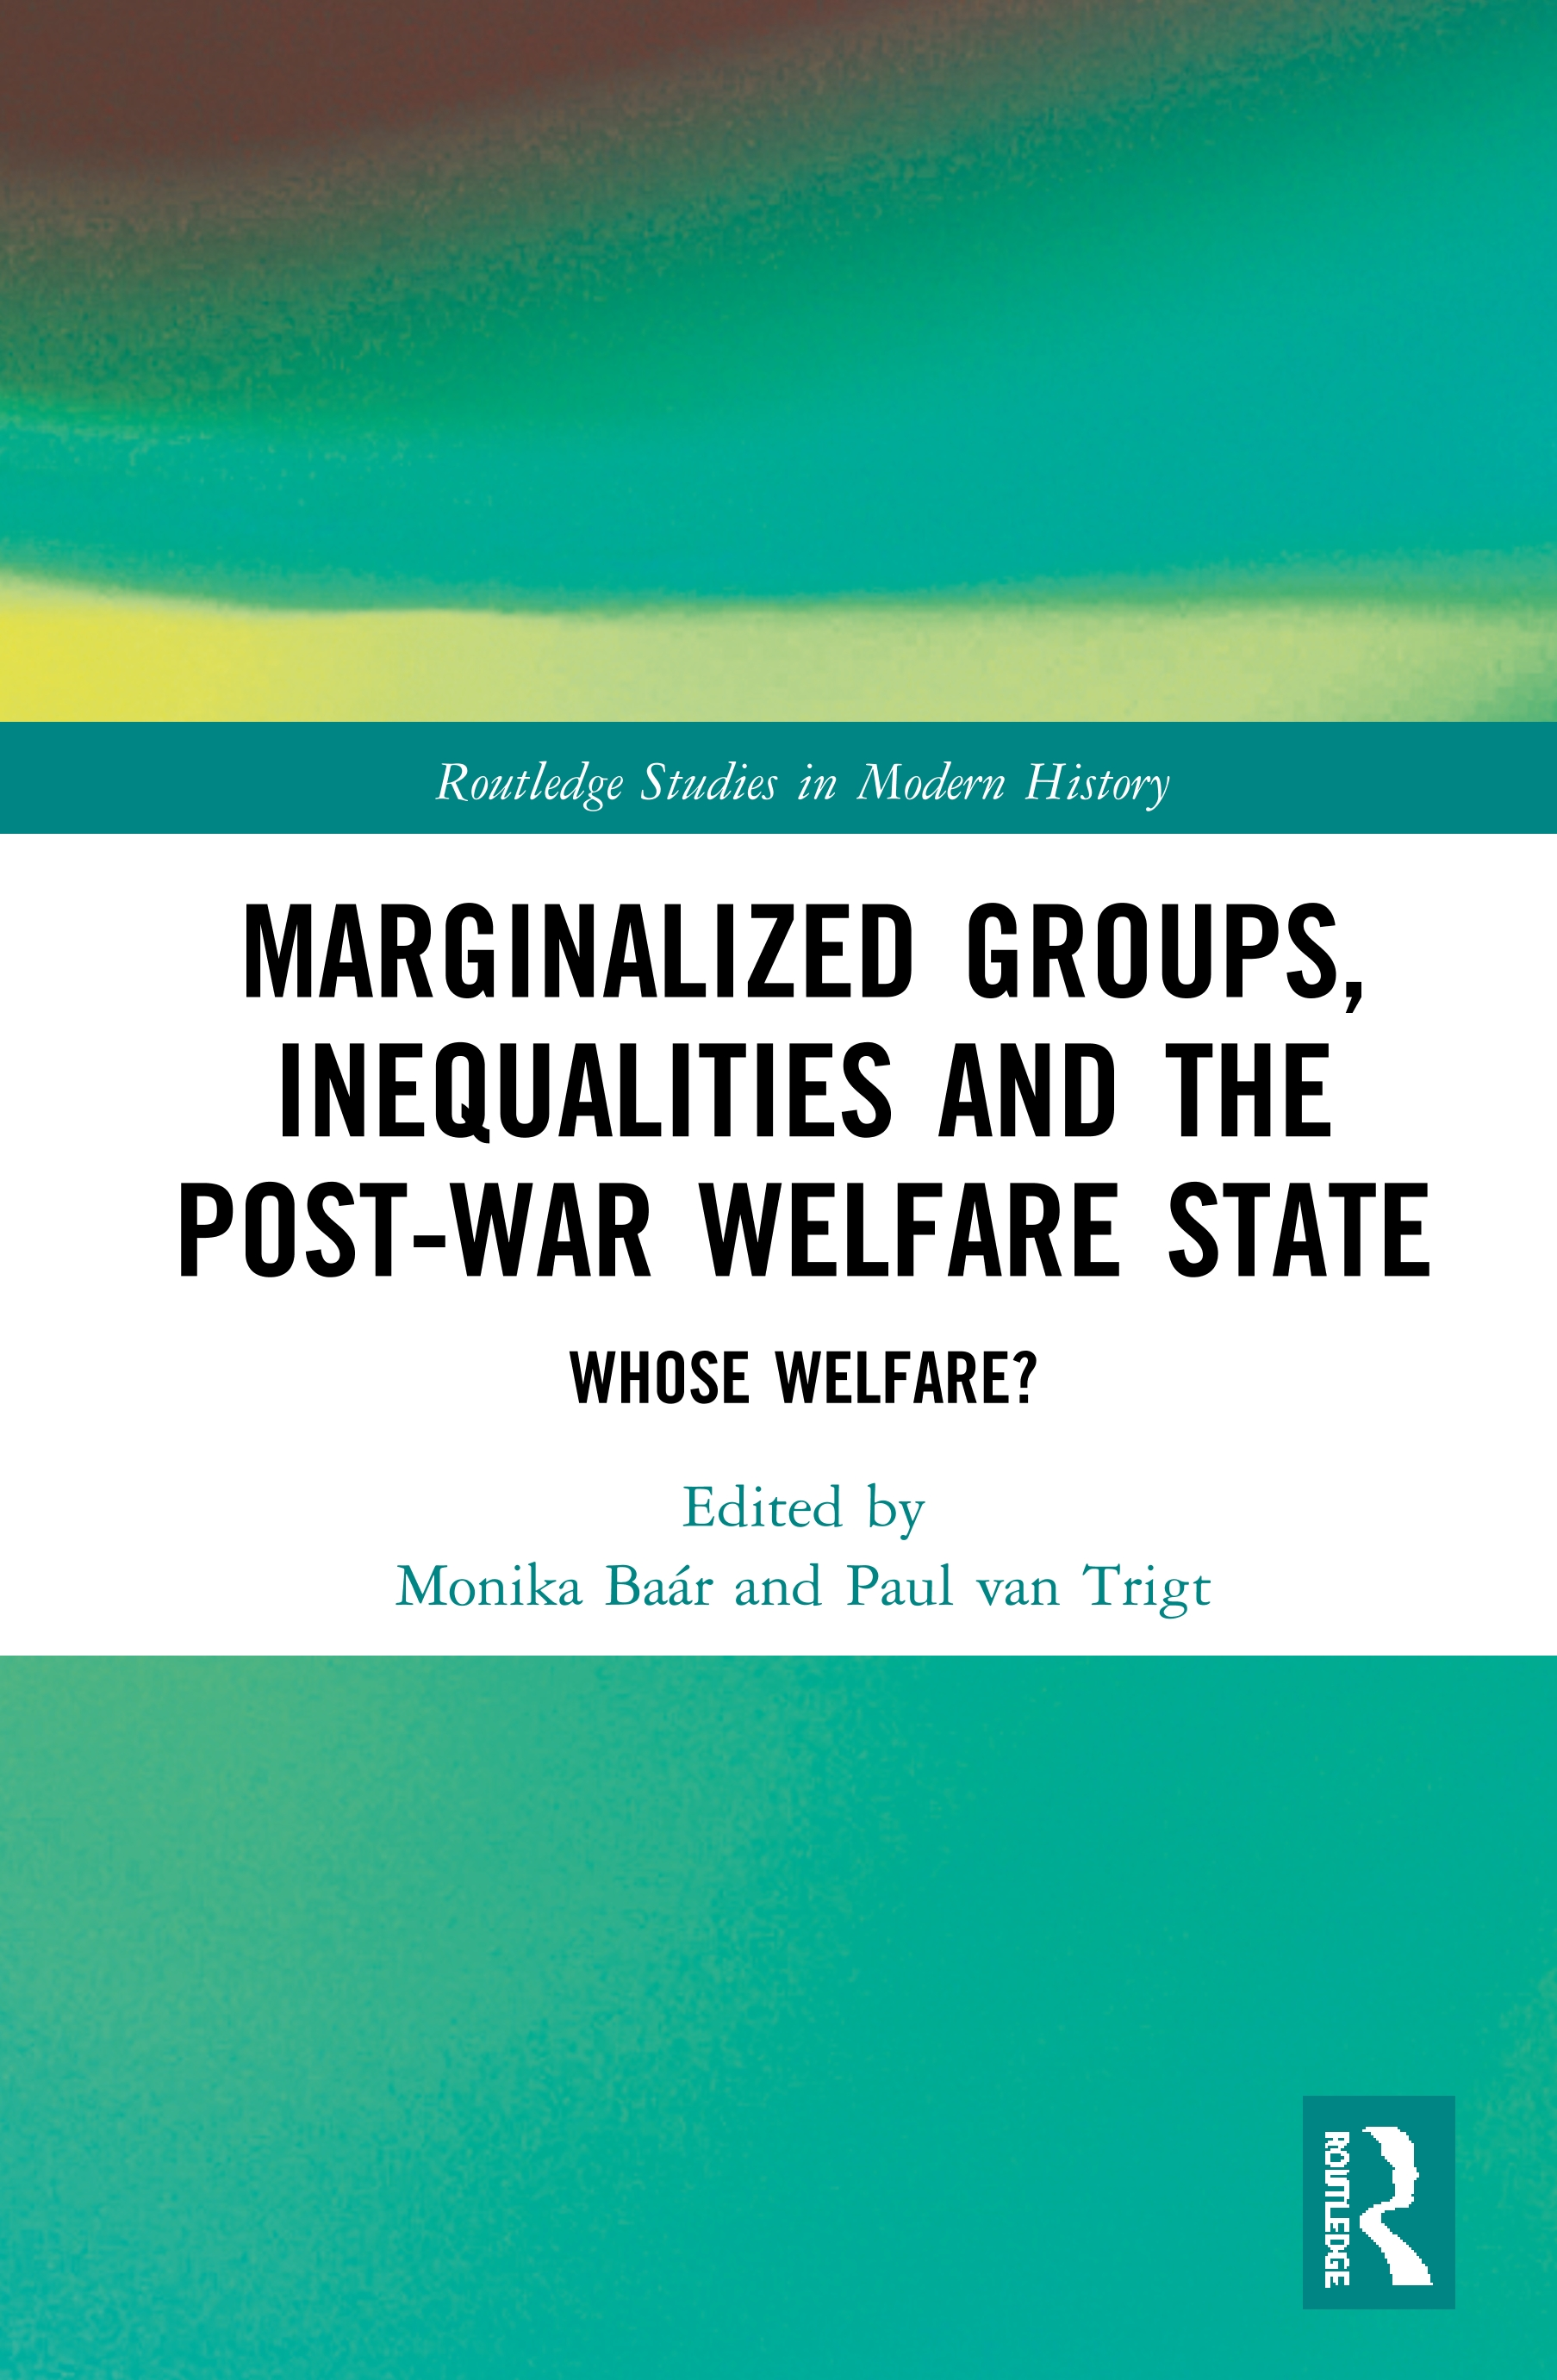 Marginalized Groups, Inequalities and the Post-War Welfare State: Whose Welfare? book cover